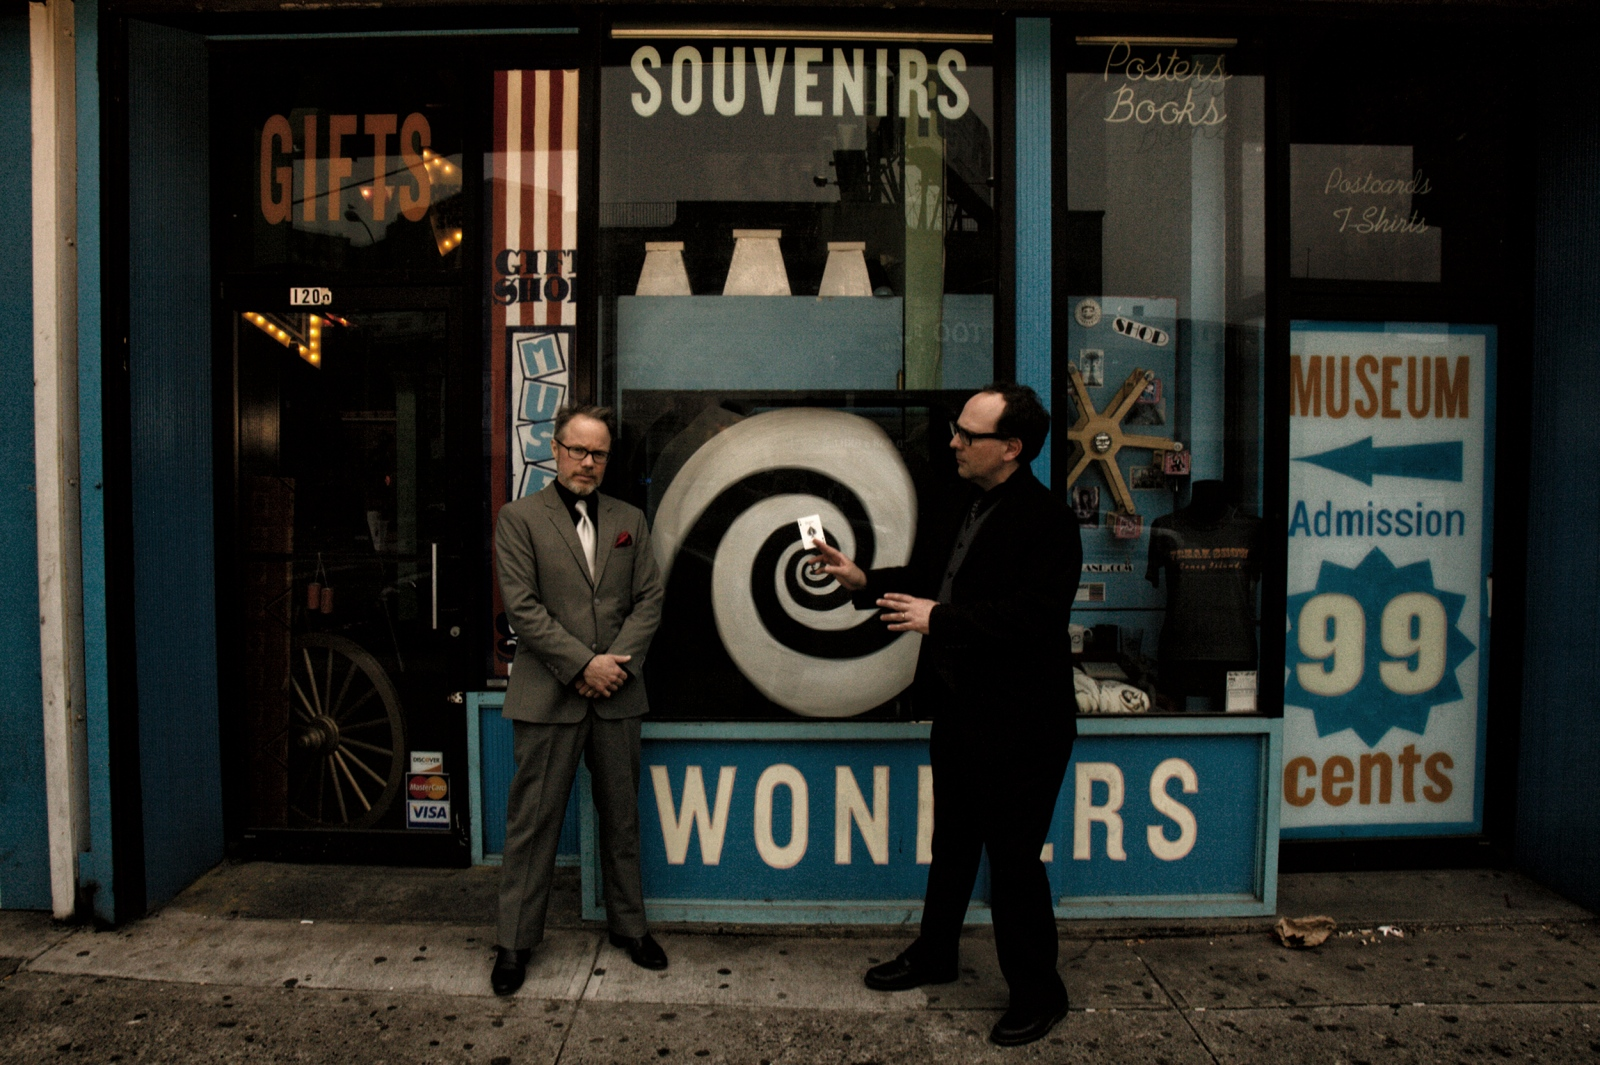 Les the Mentalist and Lord Whimsy on Surf Avenue, Coney Island USA before their lecture on Fate and Chance in the context of culture and folklore, during which they also performed traditional mentalist routines.